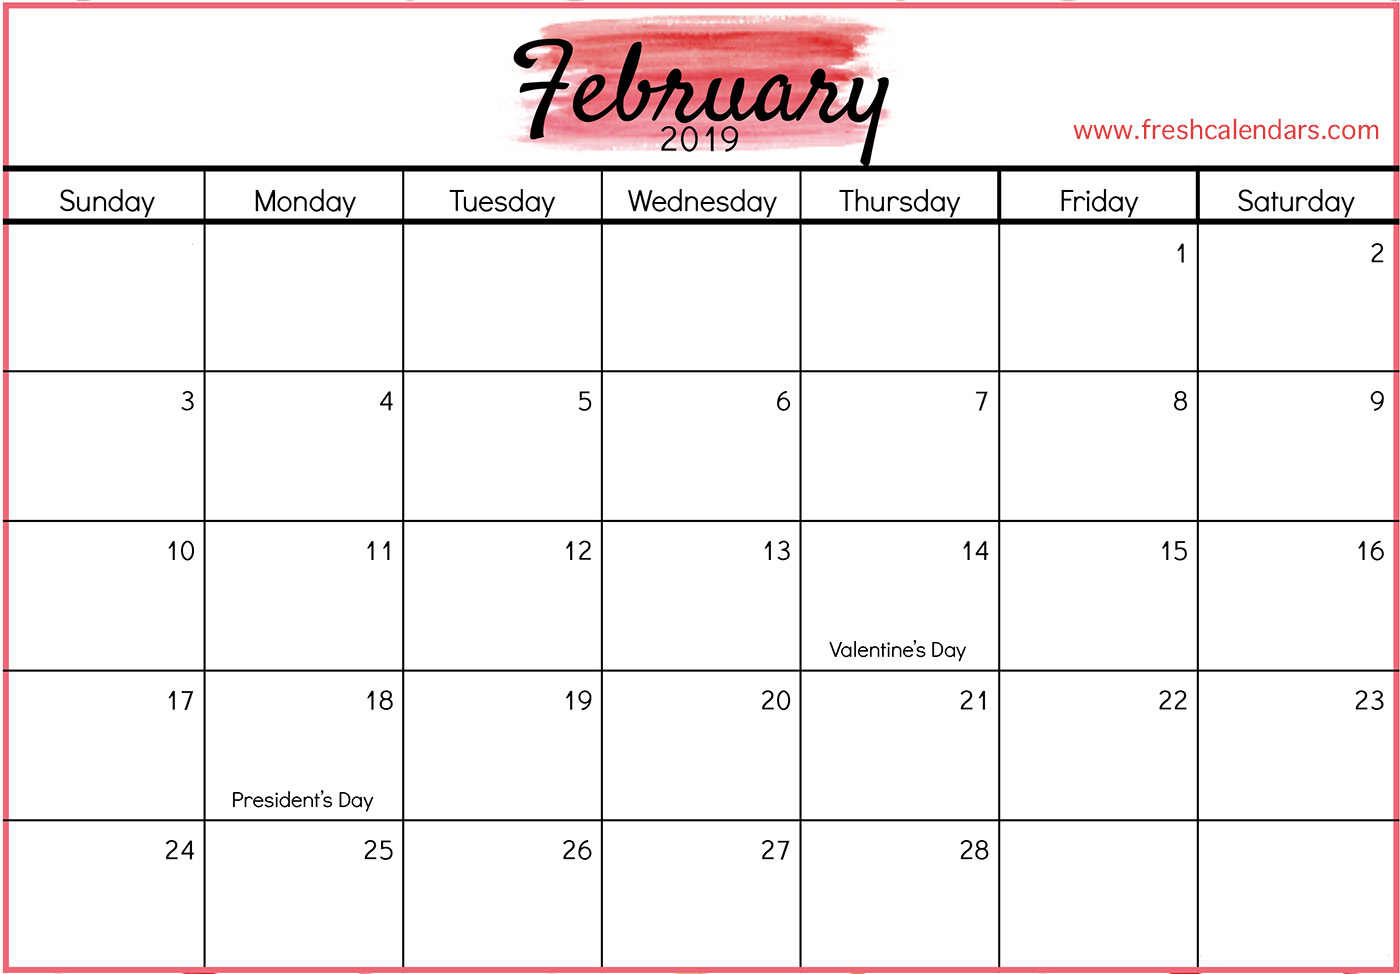 February 2019 Calendar with Holidays (Red)